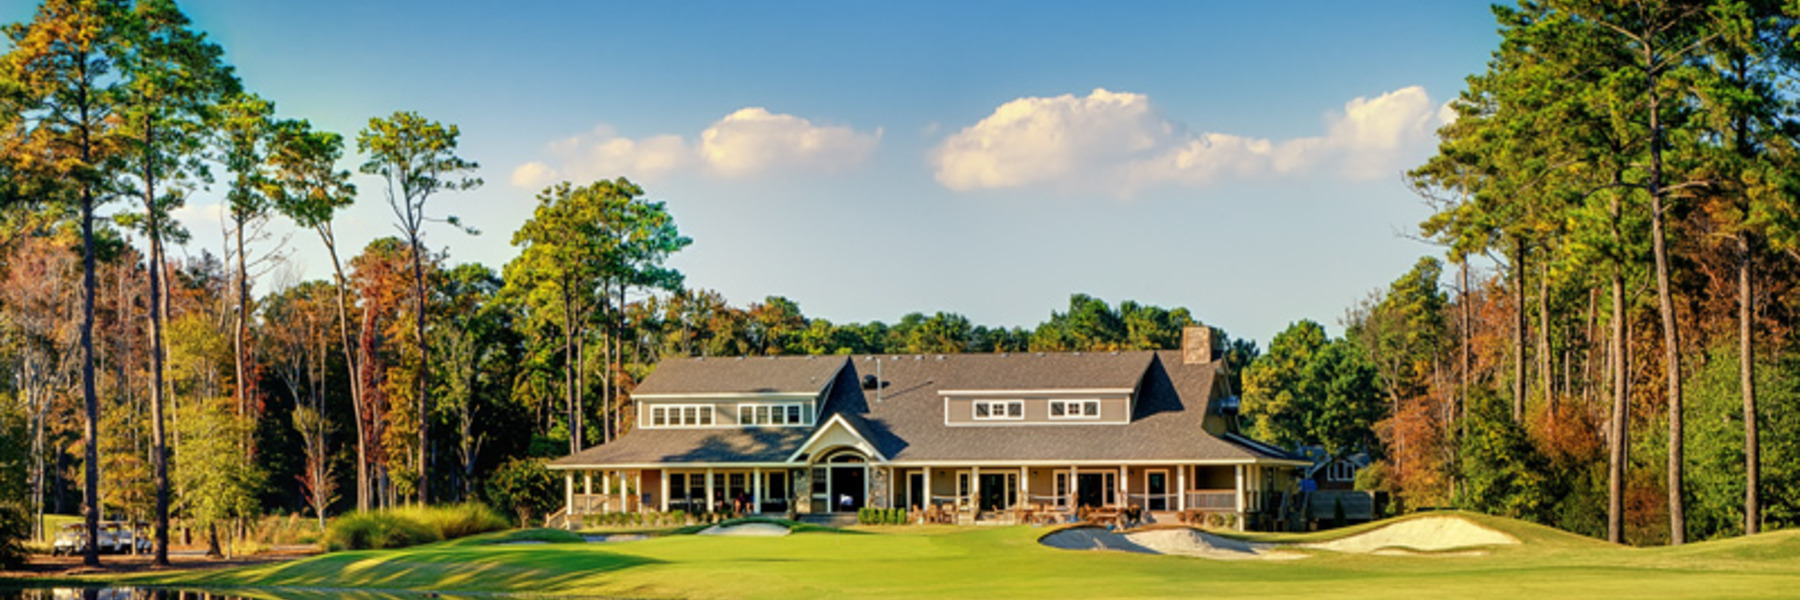 Golf Vacation Package - Kilmarlic Golf Club